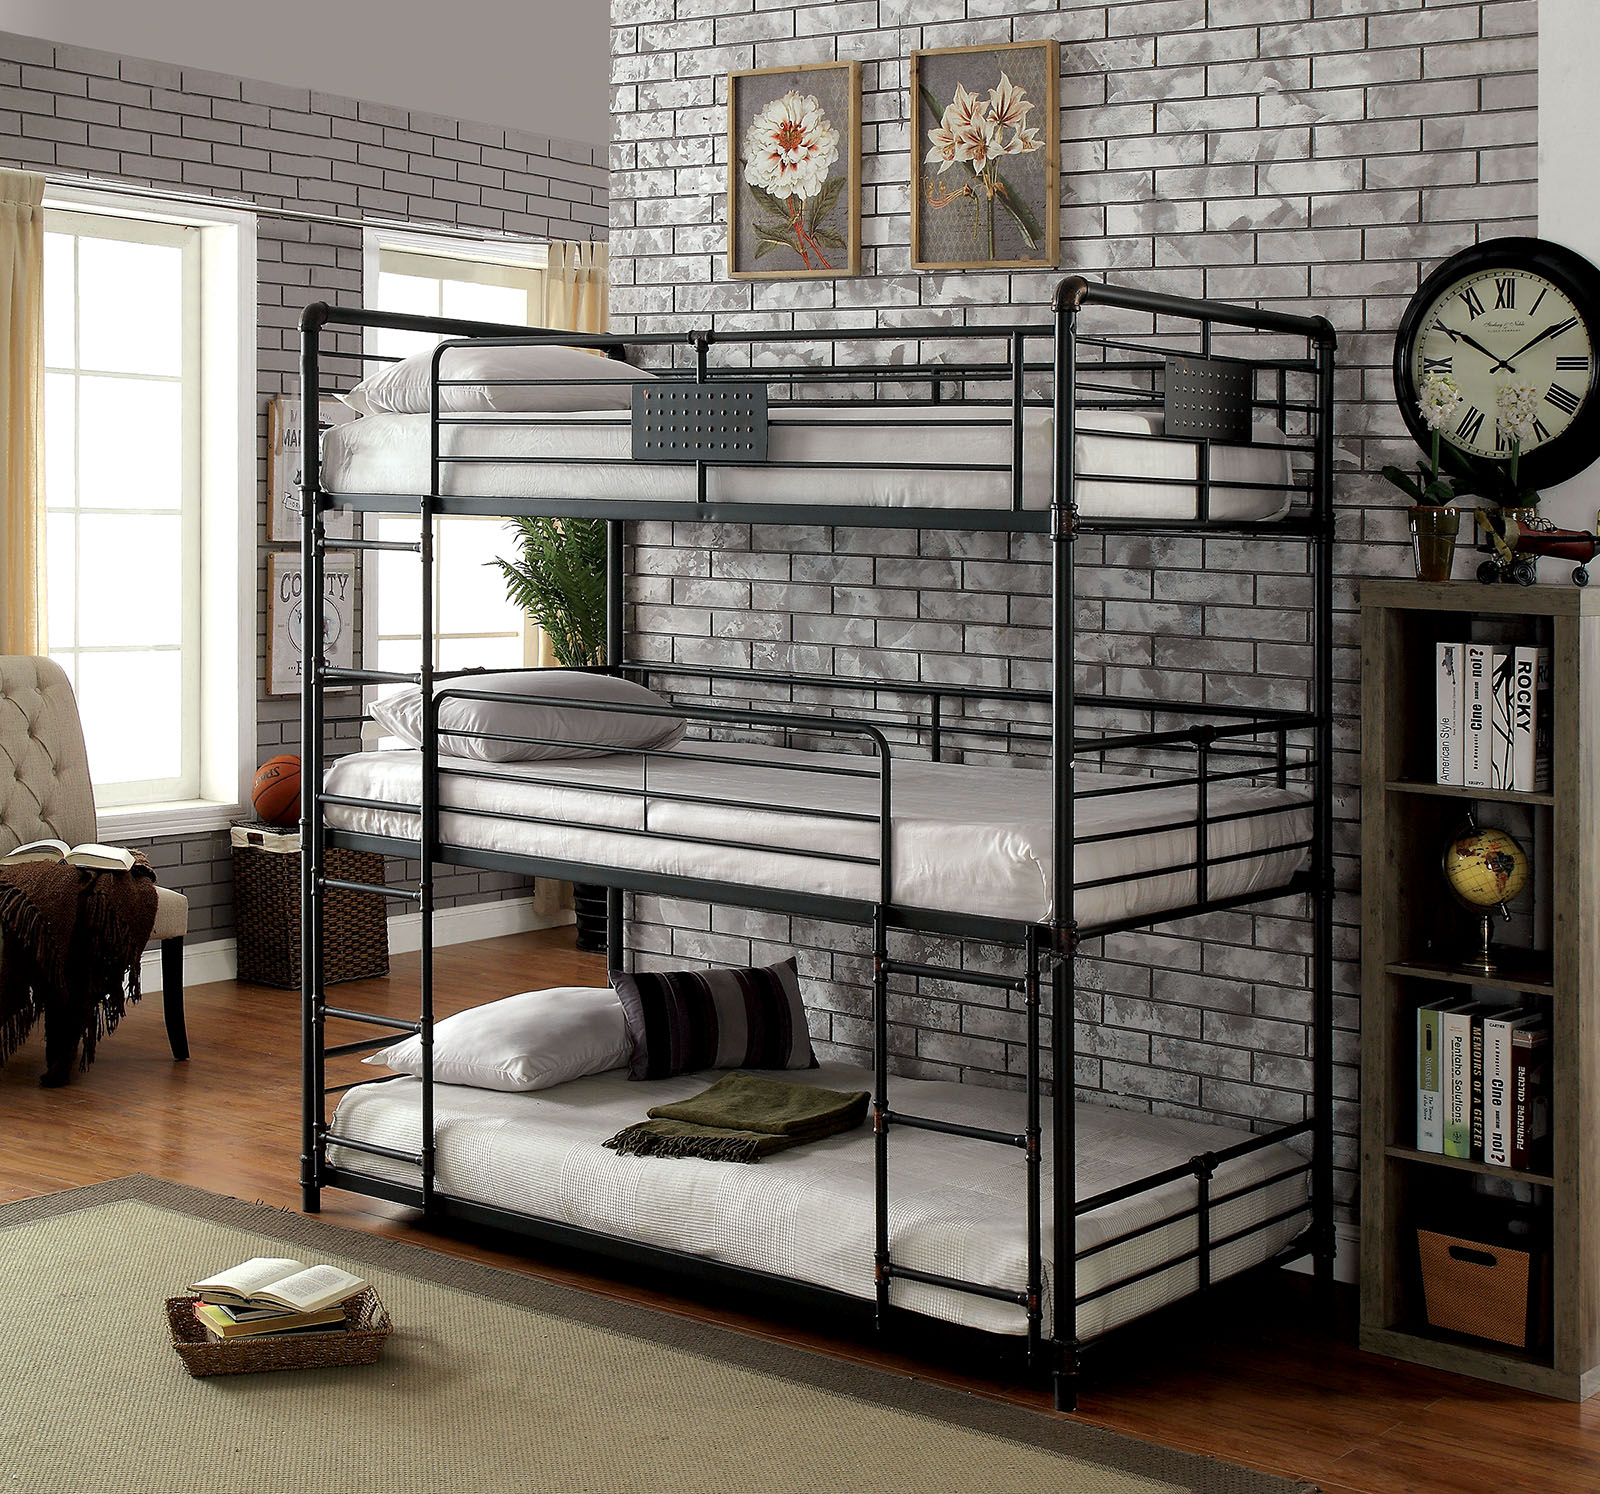 3 Tier Beds The Bed Trend For Space Short Www Justbunkbeds Com